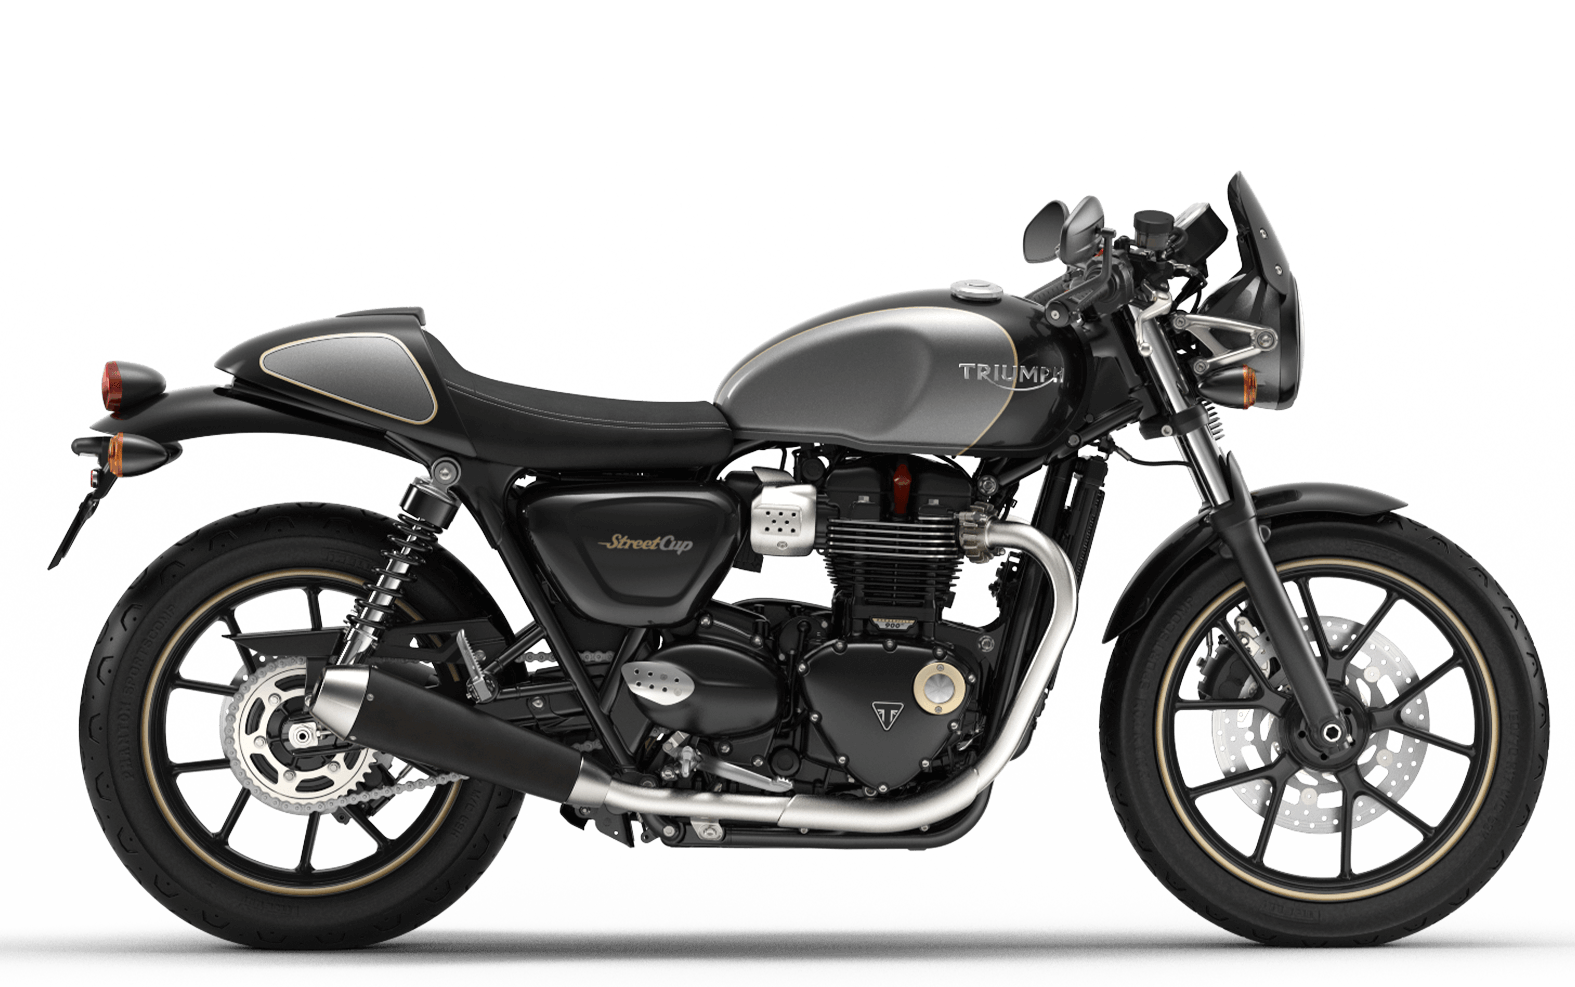 2019 Triumph Street Cup in Jet Black and Silver Ice